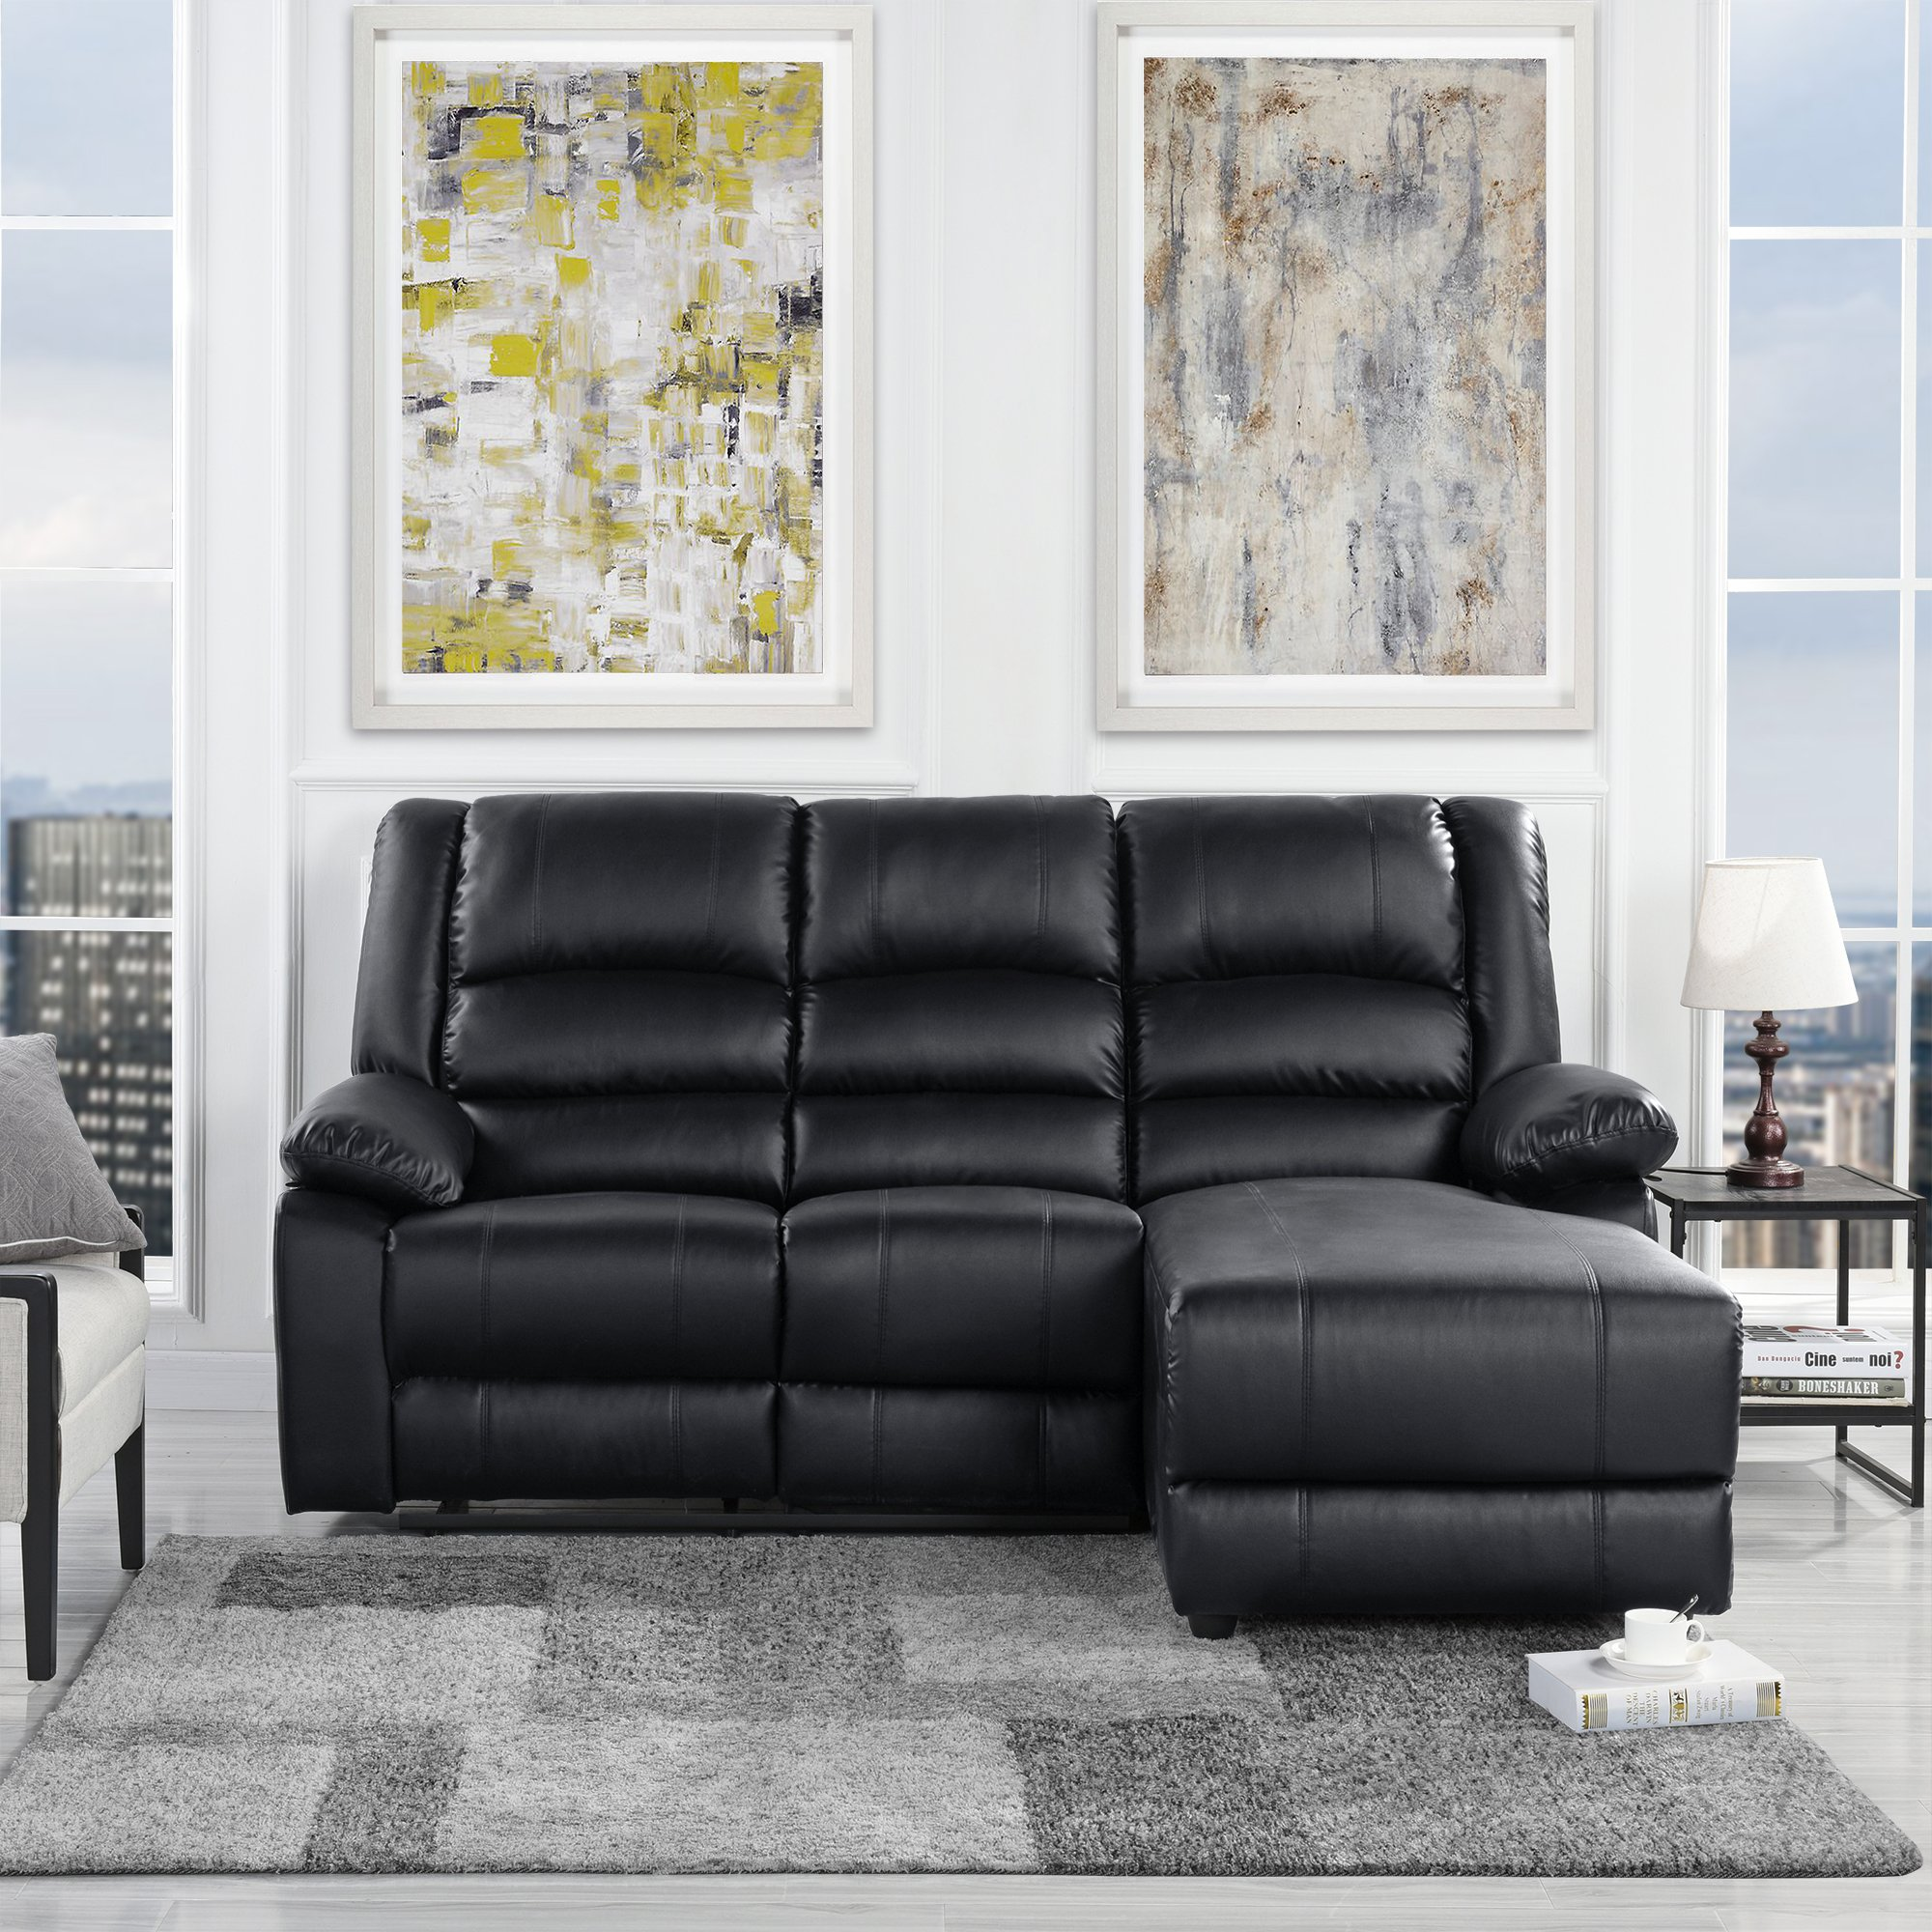 Details About Modern Bonded Leather Loveseat Recliner Sofa Loveseat Reclining Black